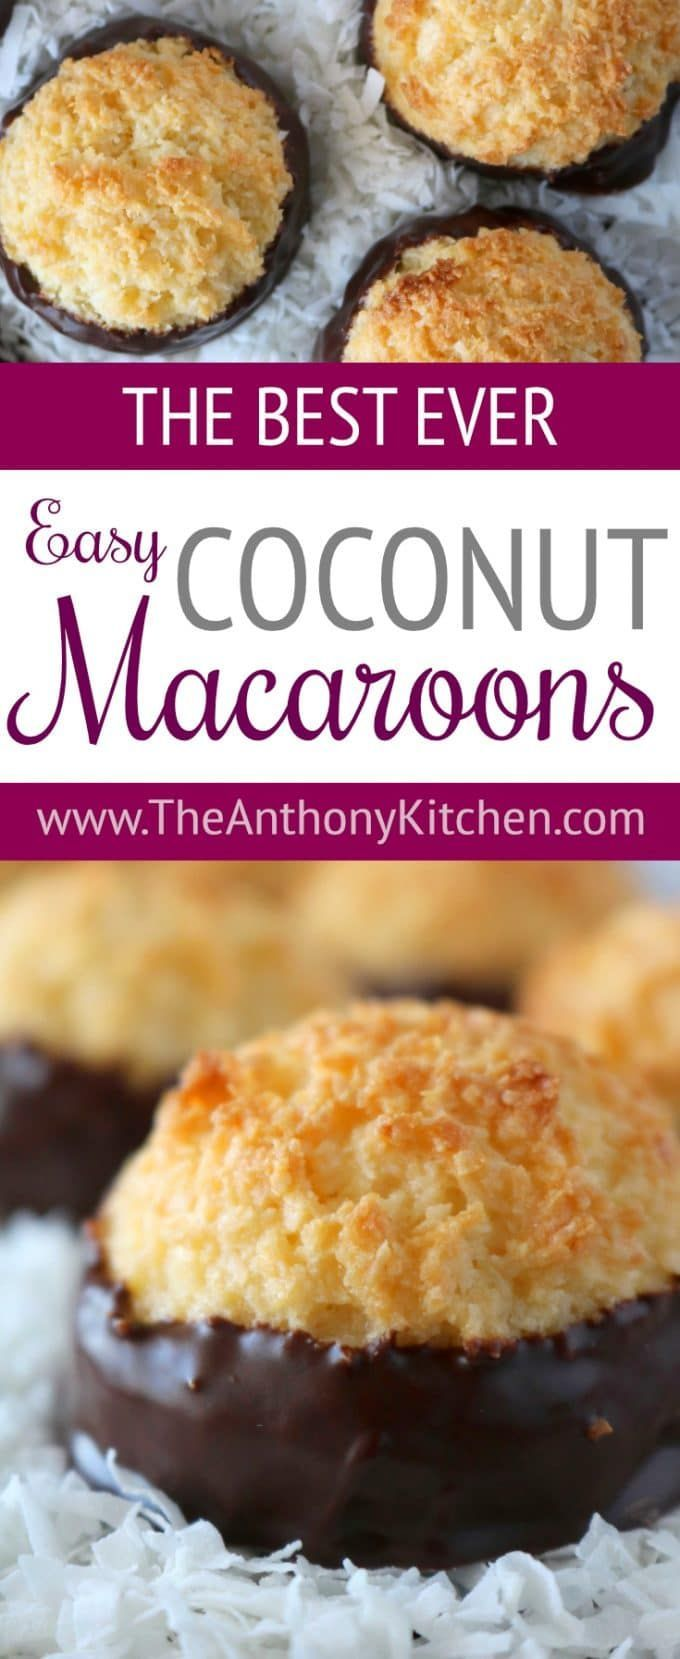 Chocolate Coconut Macaroons Recipe The Anthony Kitchen Recipe Macaroon Recipes Coconut Macaroons Easy Coconut Macaroons Recipe